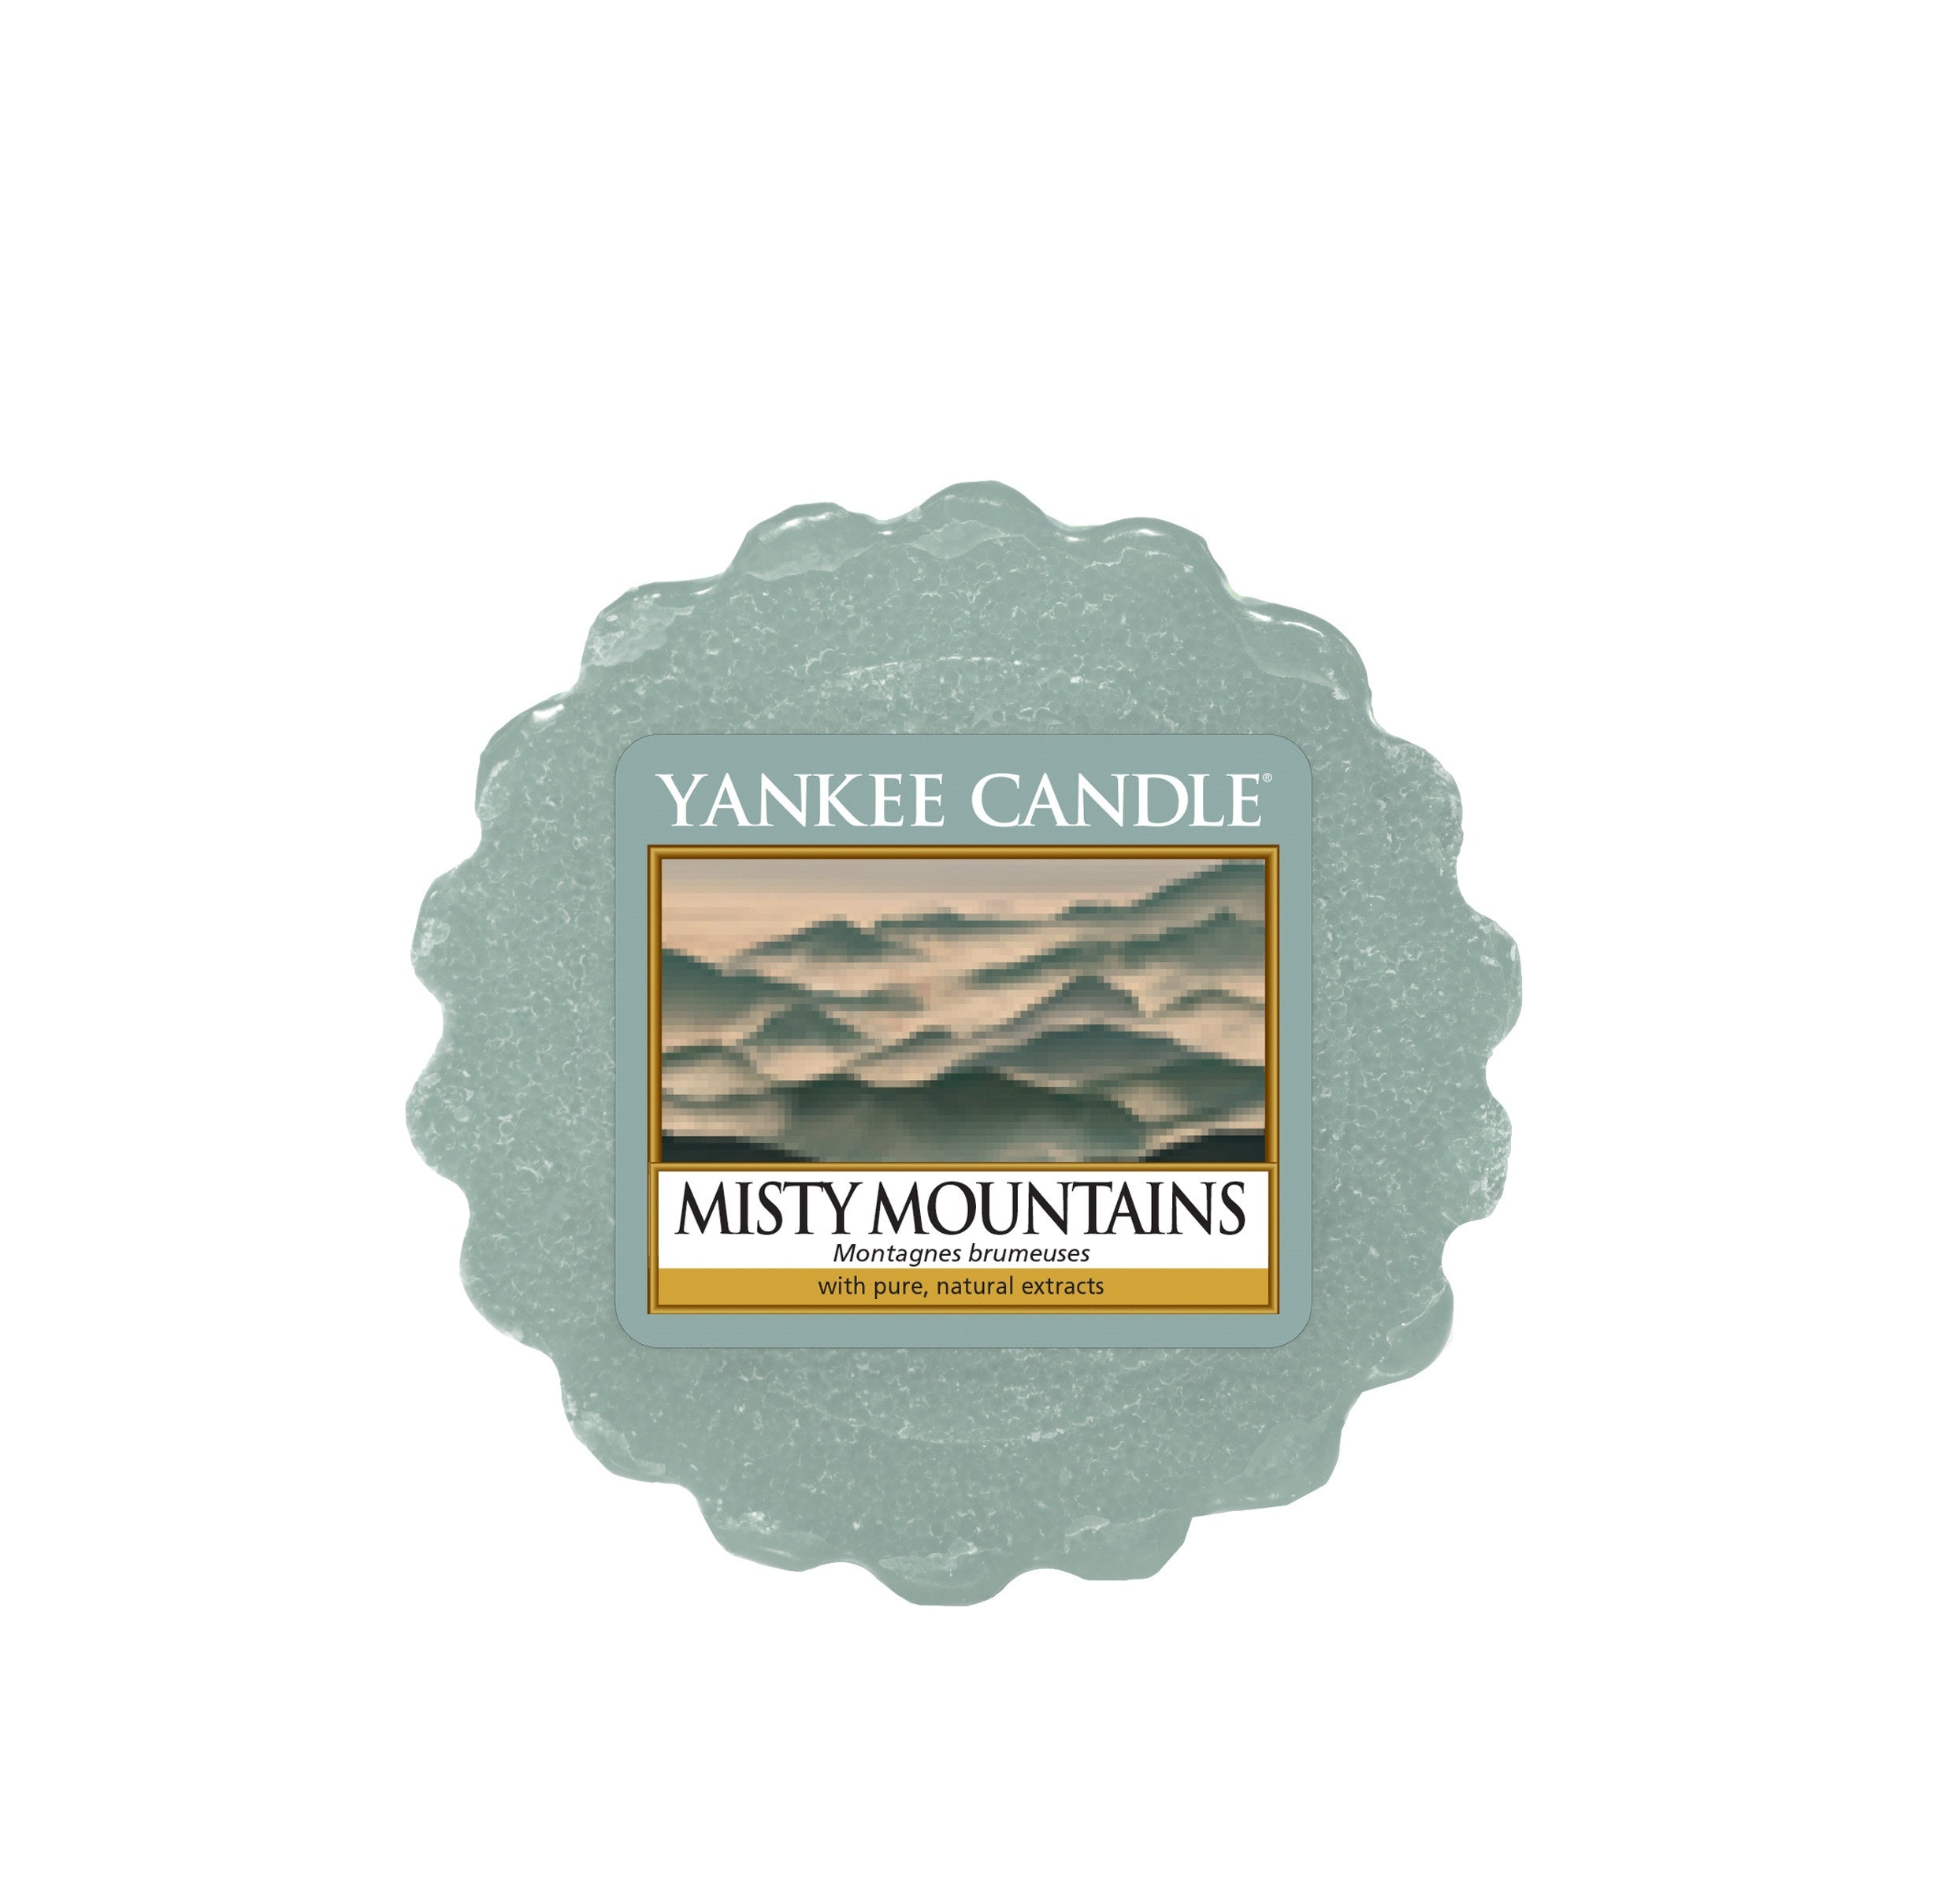 MISTY MOUNTAINS -Yankee Candle- Tart